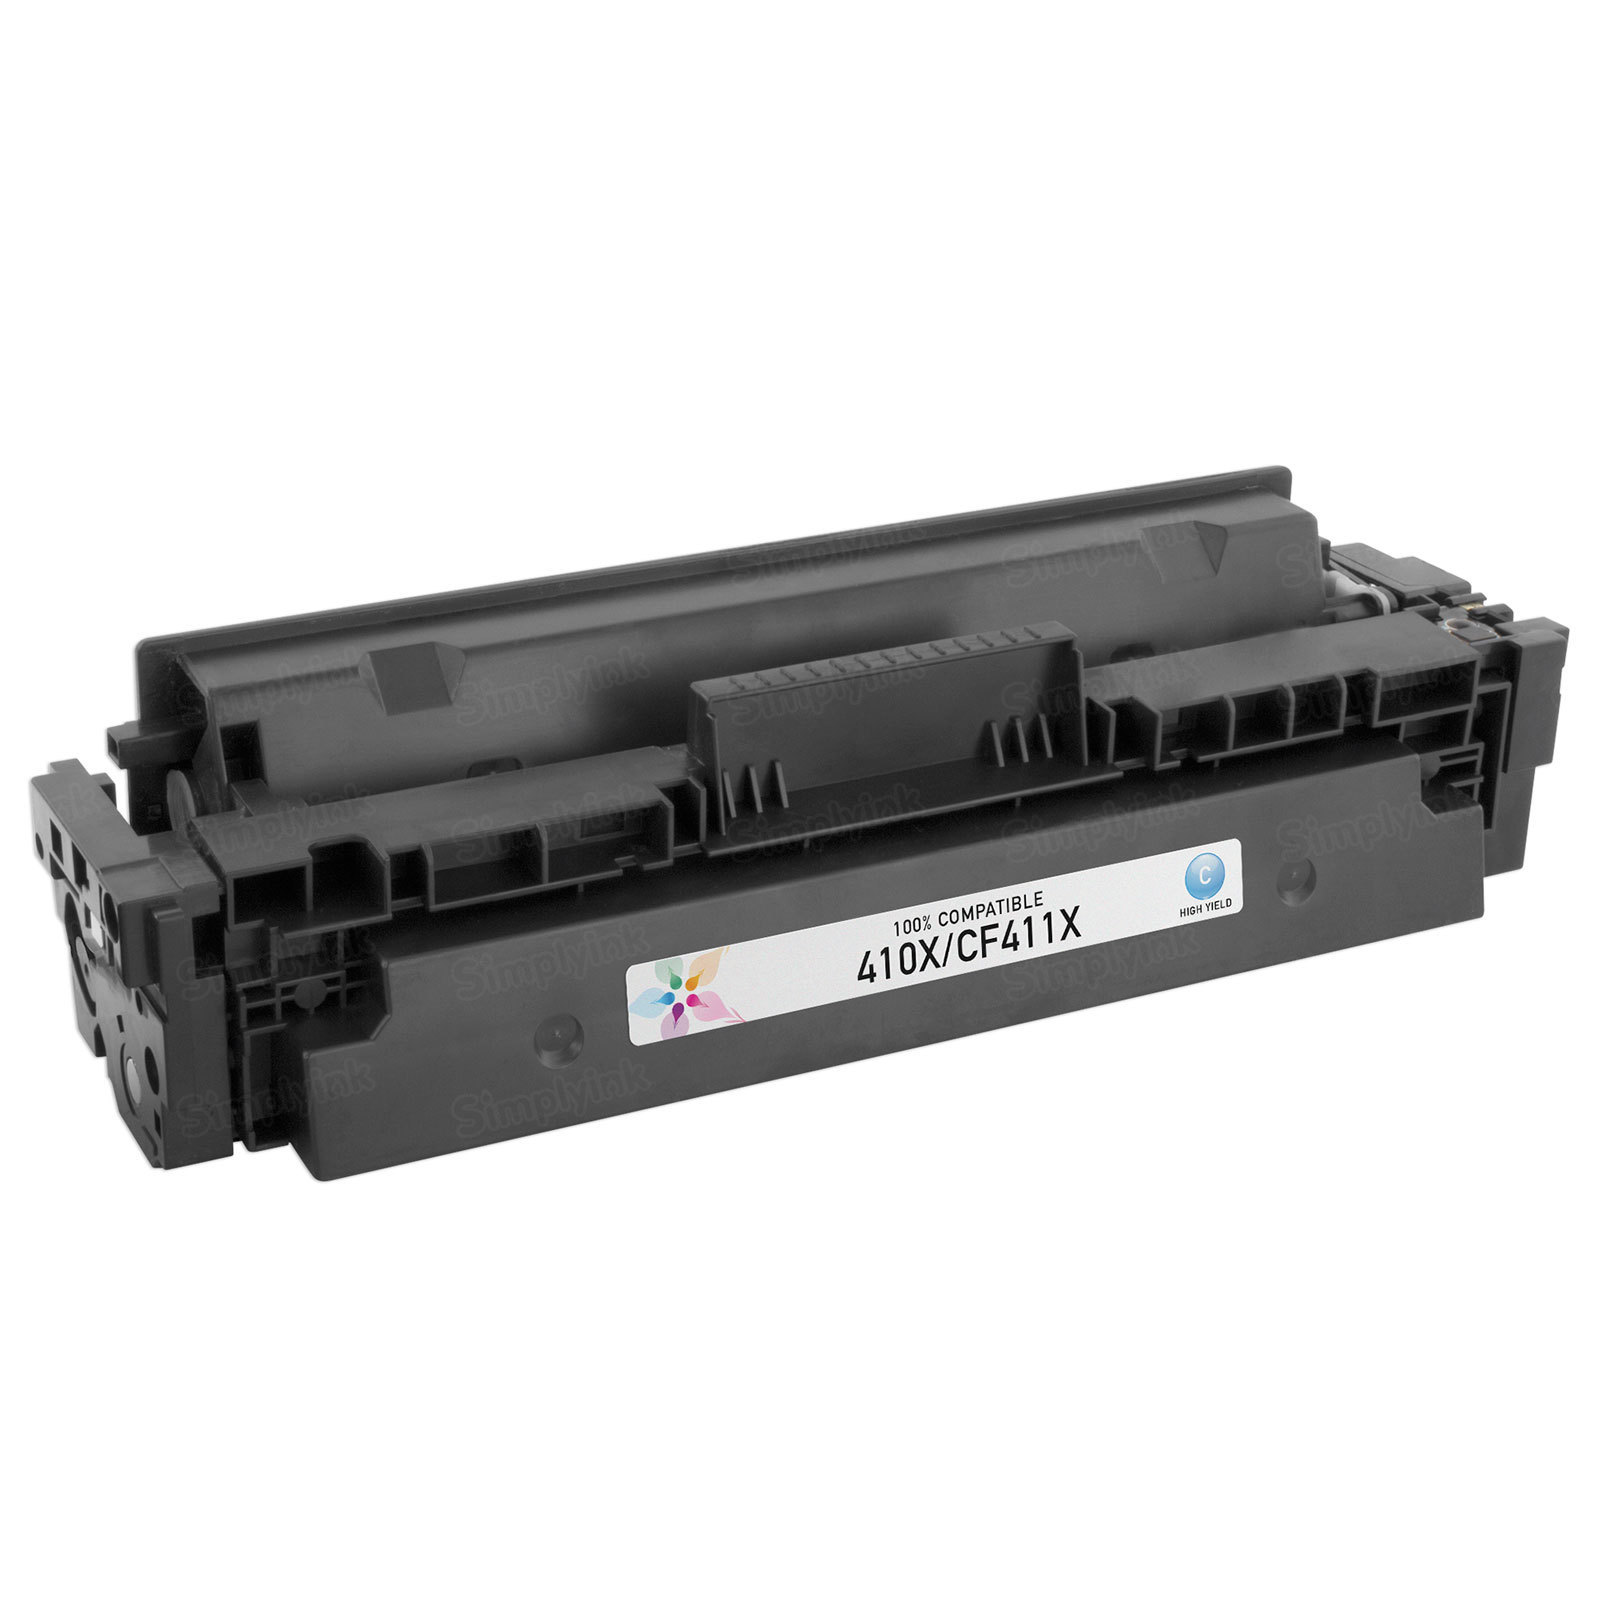 Replacement HY Cyan Toner for HP 410X